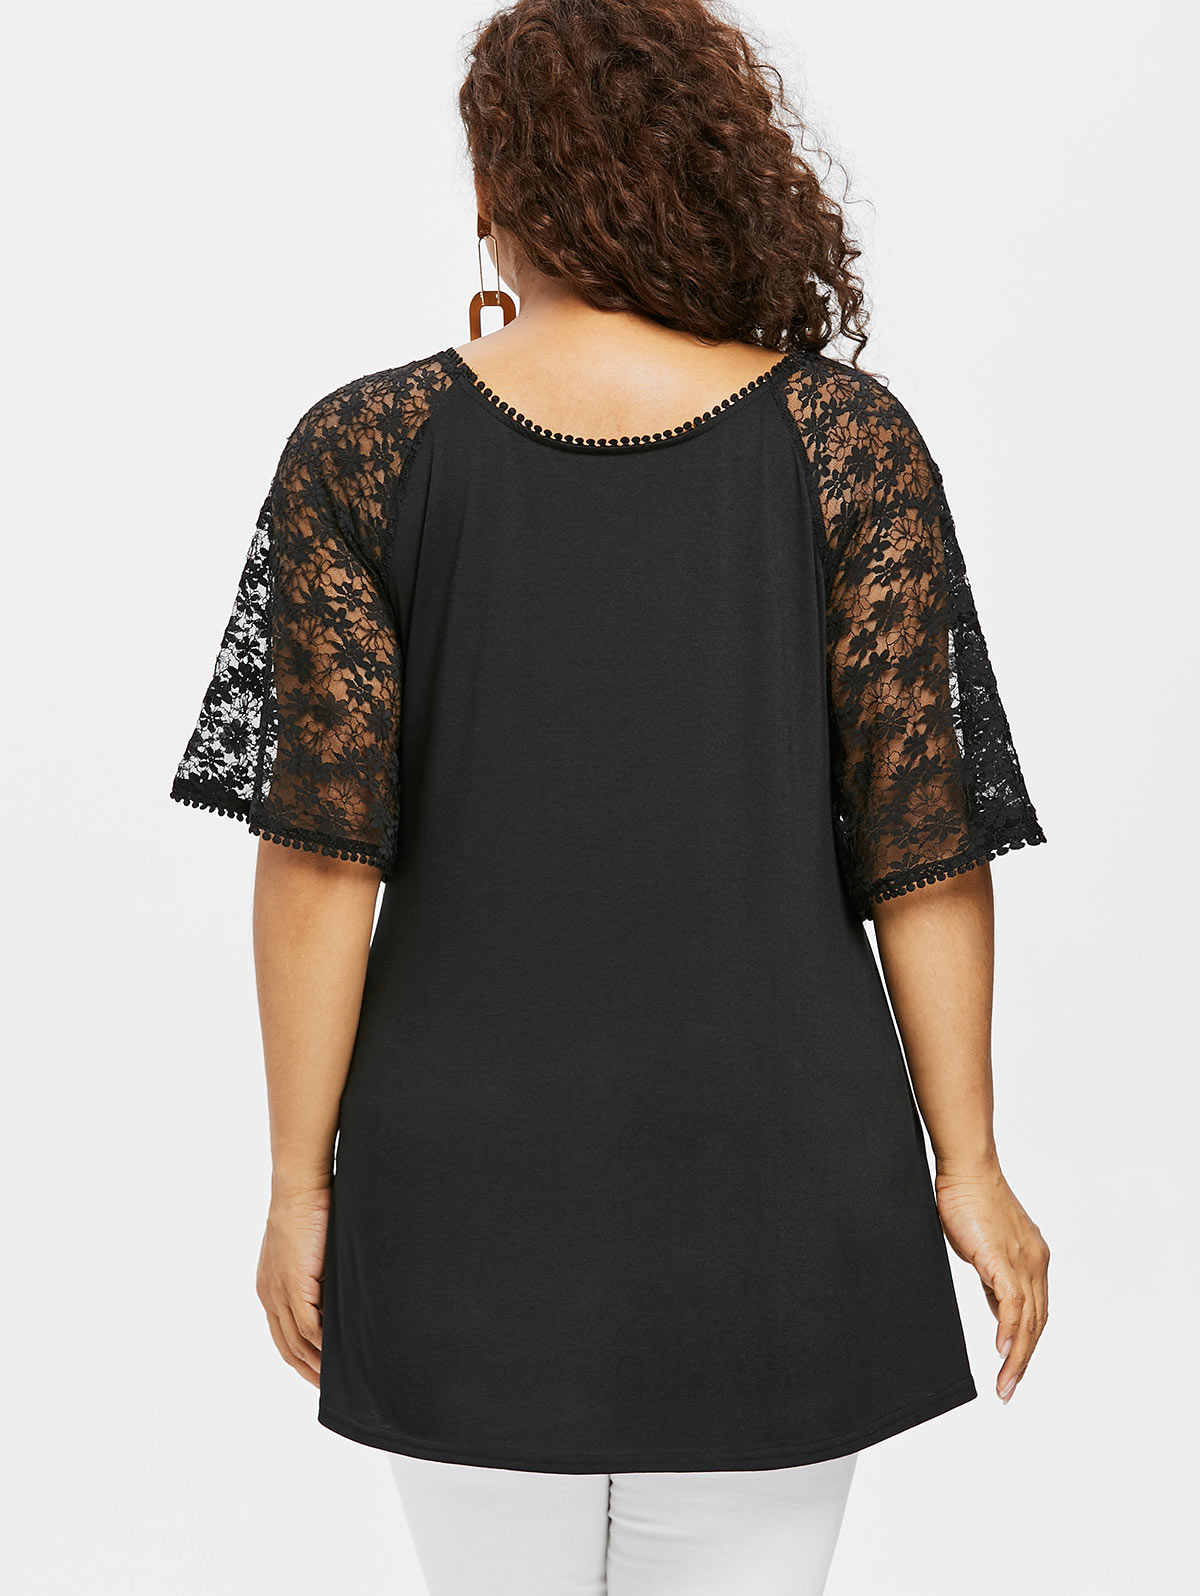 d5da95f6 ... Rosegal Plus Size Ethnic Print Lace Long Tee Women T-Shirt Summer  Casual O Neck ...